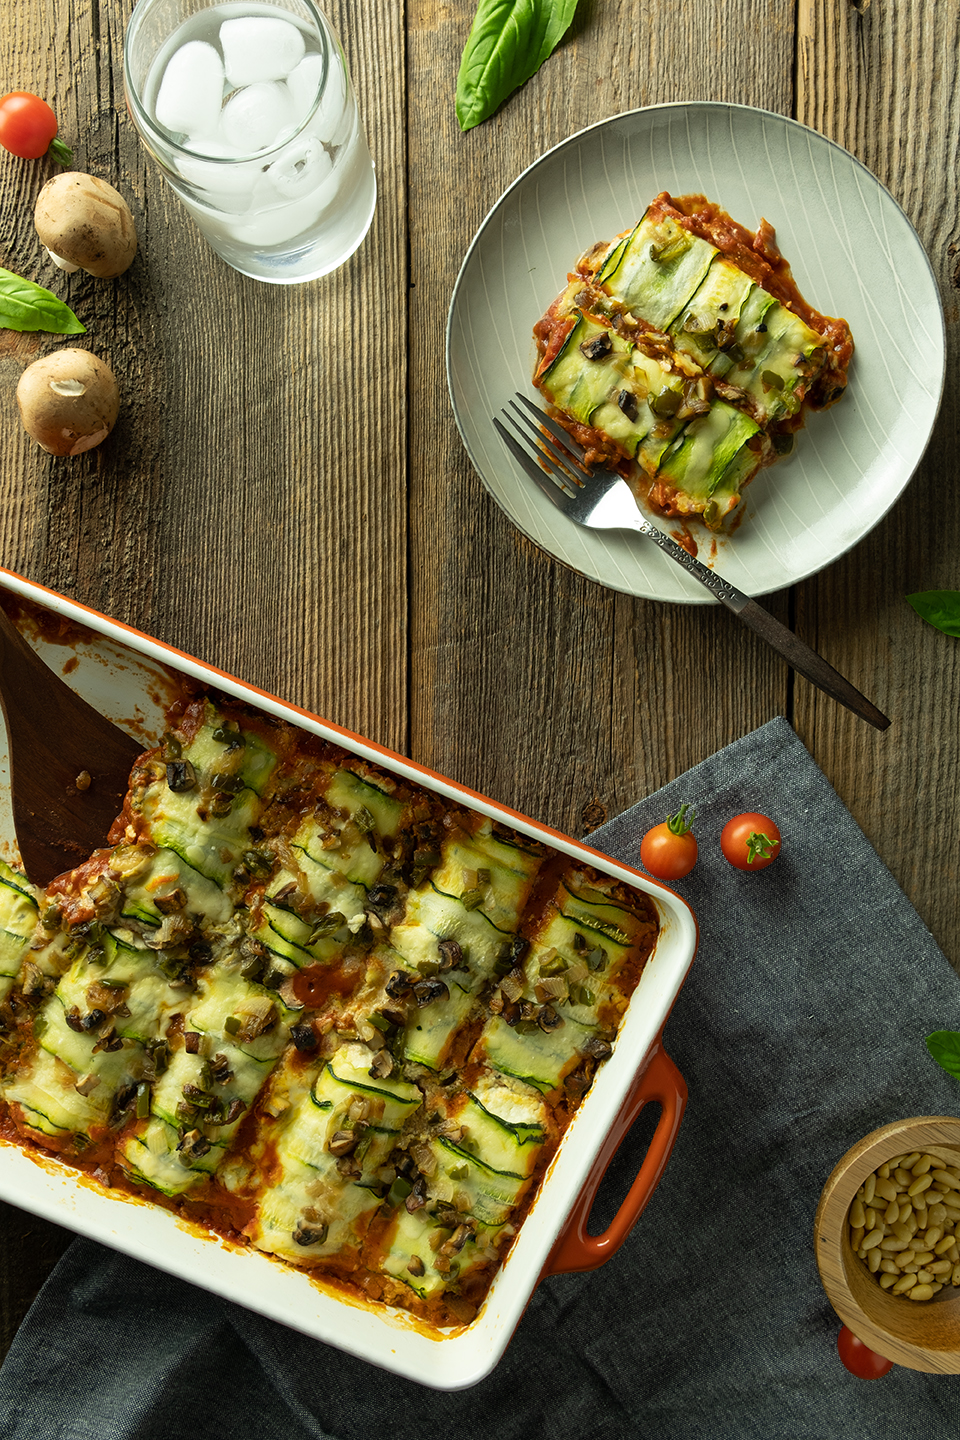 JodiLoves_Low-Carb Zucchini-Ricotta-Cannelloni_plated-BEFORE.jpg